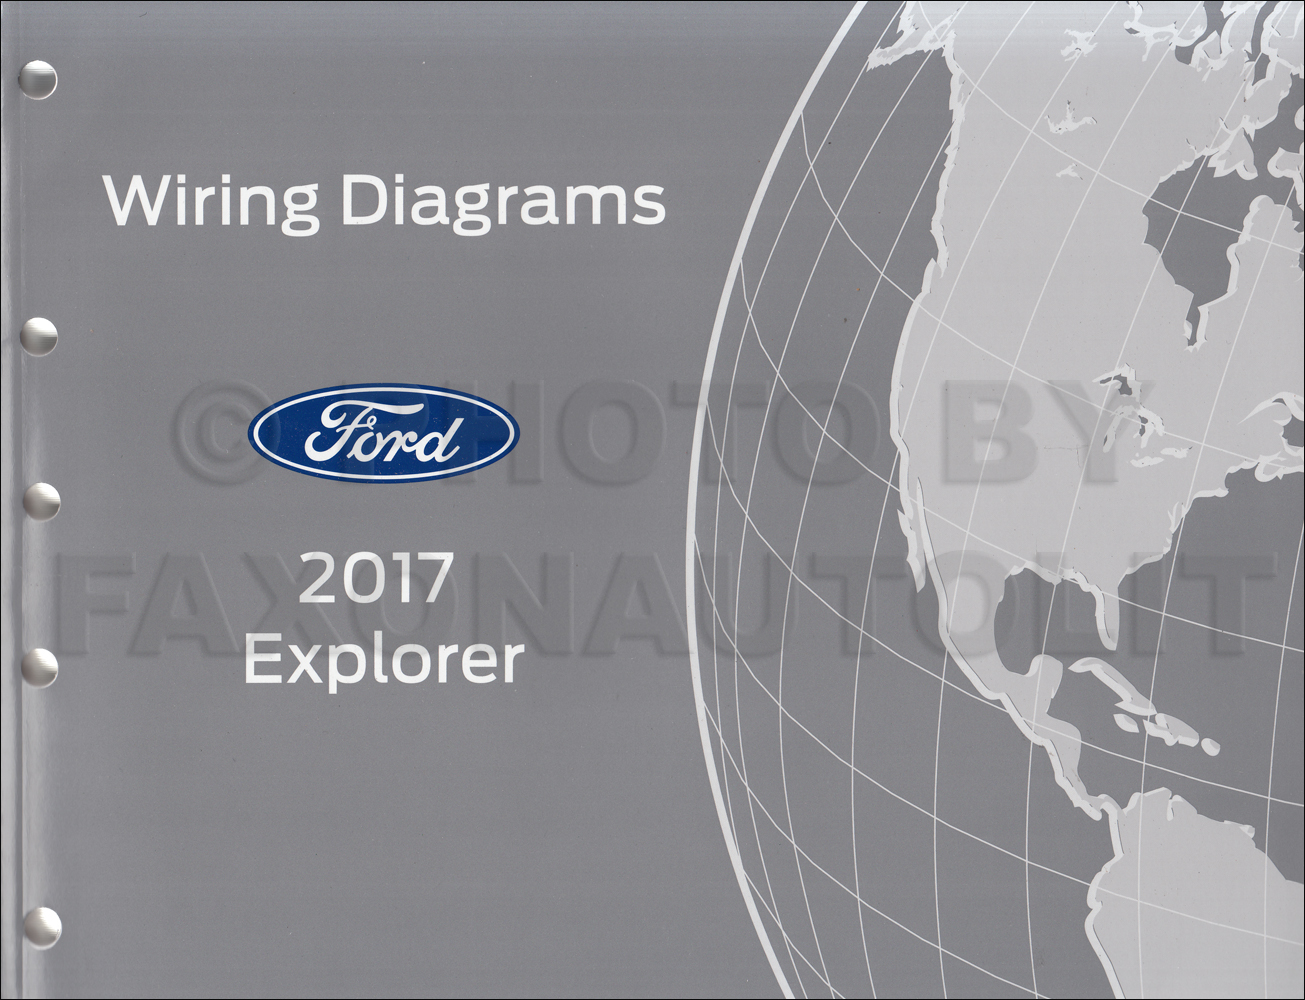 2017FordExplorerOWD Ford Escape Wiring Diagrams on ford escape assembly, ford escape relay location, ford escape coil, ford escape door sensor, kia forte wiring diagram, jeep grand cherokee wiring diagram, lexus gx wiring diagram, ford escape body diagram, mercury milan wiring diagram, chrysler aspen wiring diagram, isuzu hombre wiring diagram, ford escape clutch, chevrolet volt wiring diagram, ford stereo wiring diagrams, ford escape steering column diagram, ford escape starter diagram, subaru baja wiring diagram, ford escape controls, ford escape electrical diagram, chevrolet hhr wiring diagram,